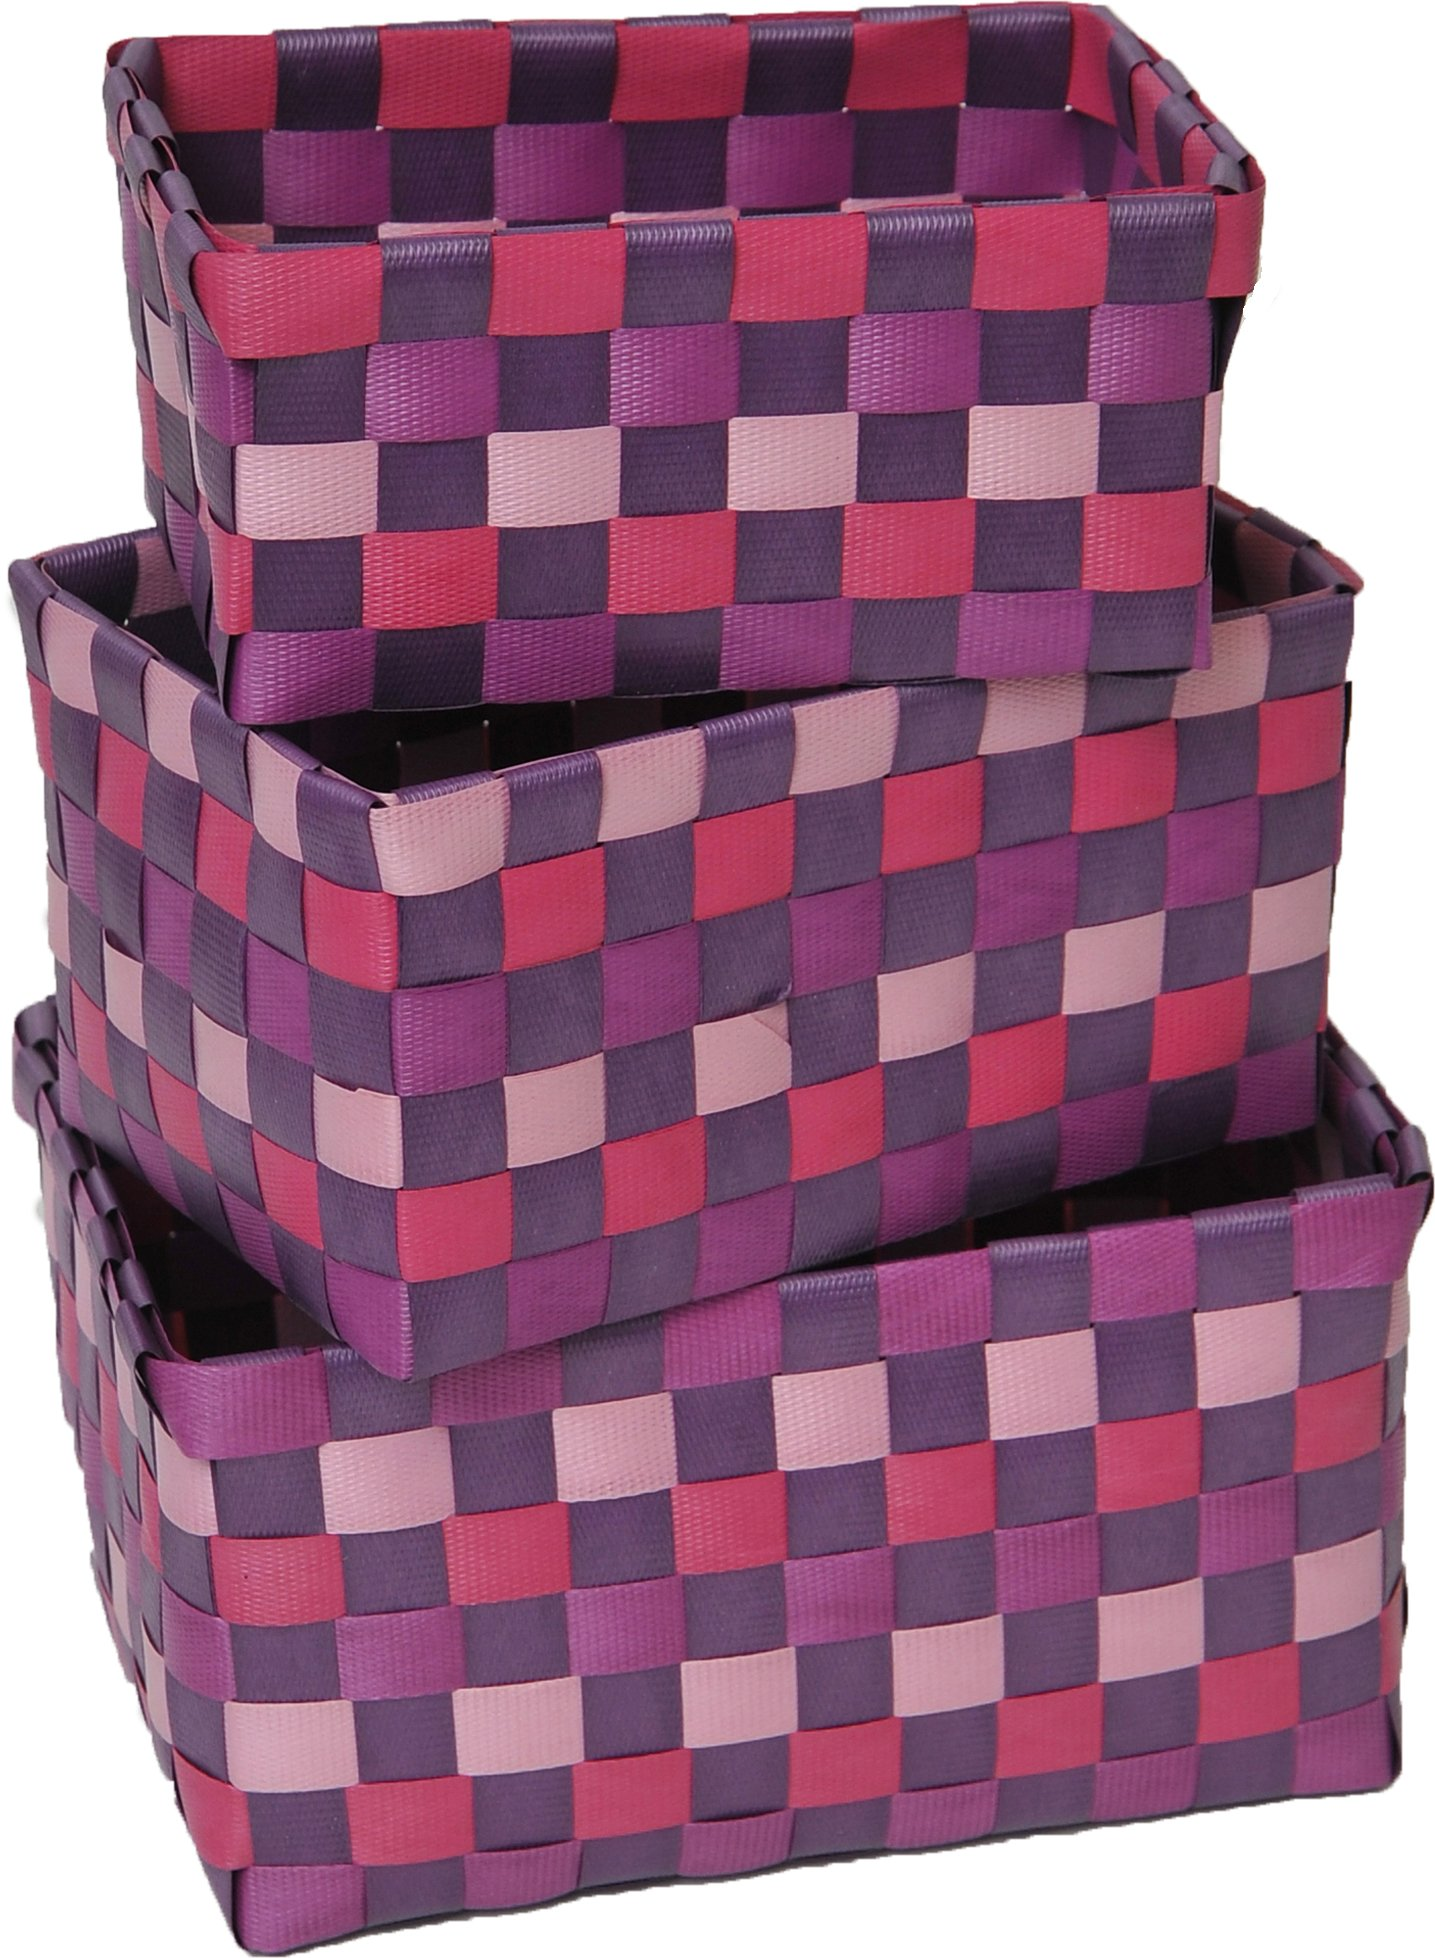 EVIDECO 8402170 Checkered Woven Strap Storage Baskets Totes Set of 3 Purple, 7.48 L x 5.12 W x 3.74 H, - HIGH-QUALITY: This set of 3 storage baskets is made of durable polypropylene, it will last for years DESIGNER ARTWORK: nice checkered woven strap design which brings an elegant touch to your bathroom. A great addition to any closet, bathroom, kitchen, office or vanity countertop! LARGE CHOICE : 11 colors available from black to red, grey, purple or white to name a few - living-room-decor, living-room, baskets-storage - 81ygNhHqb6L -